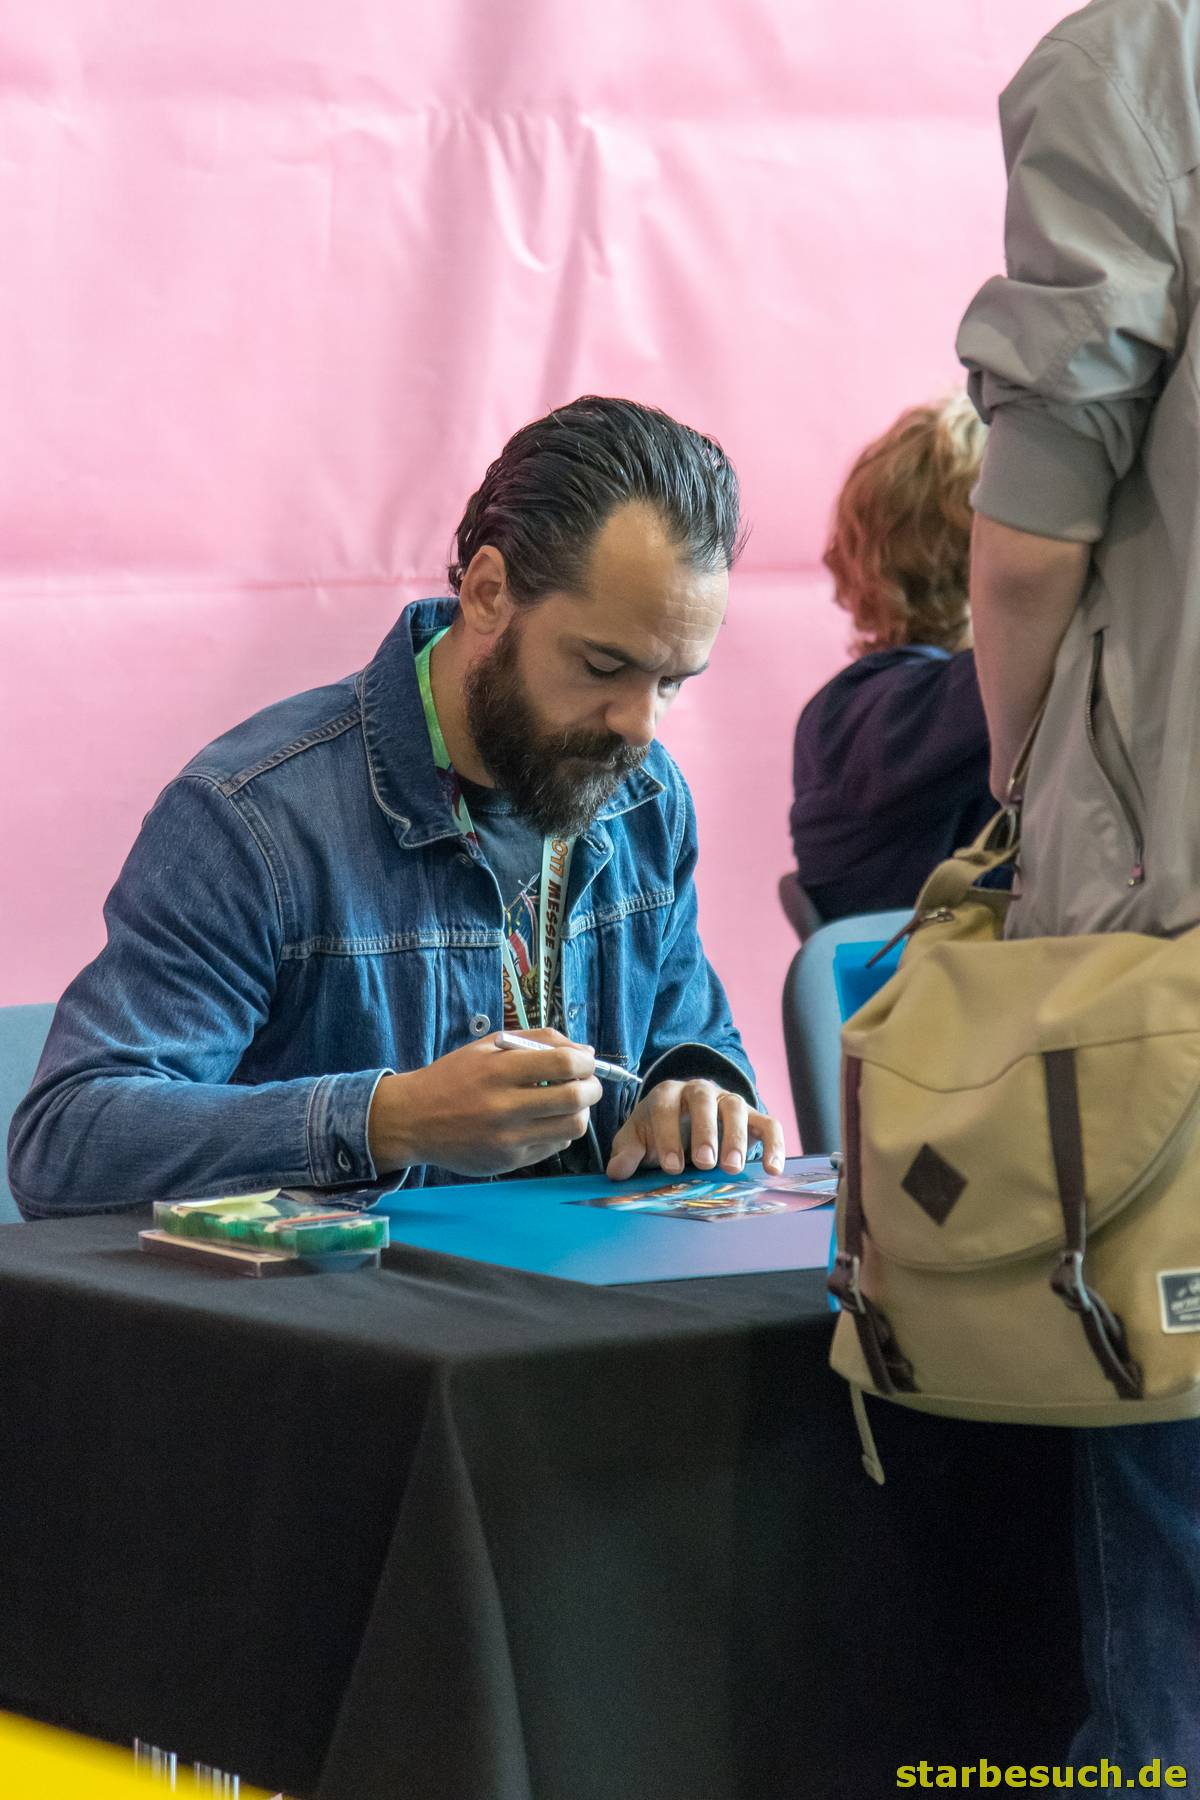 July 1st 2017. Stuttgart, Germany. Casper Crump, DC: Legends of Tomorrow actor, signing autographs at Comic Con Stuttgart.